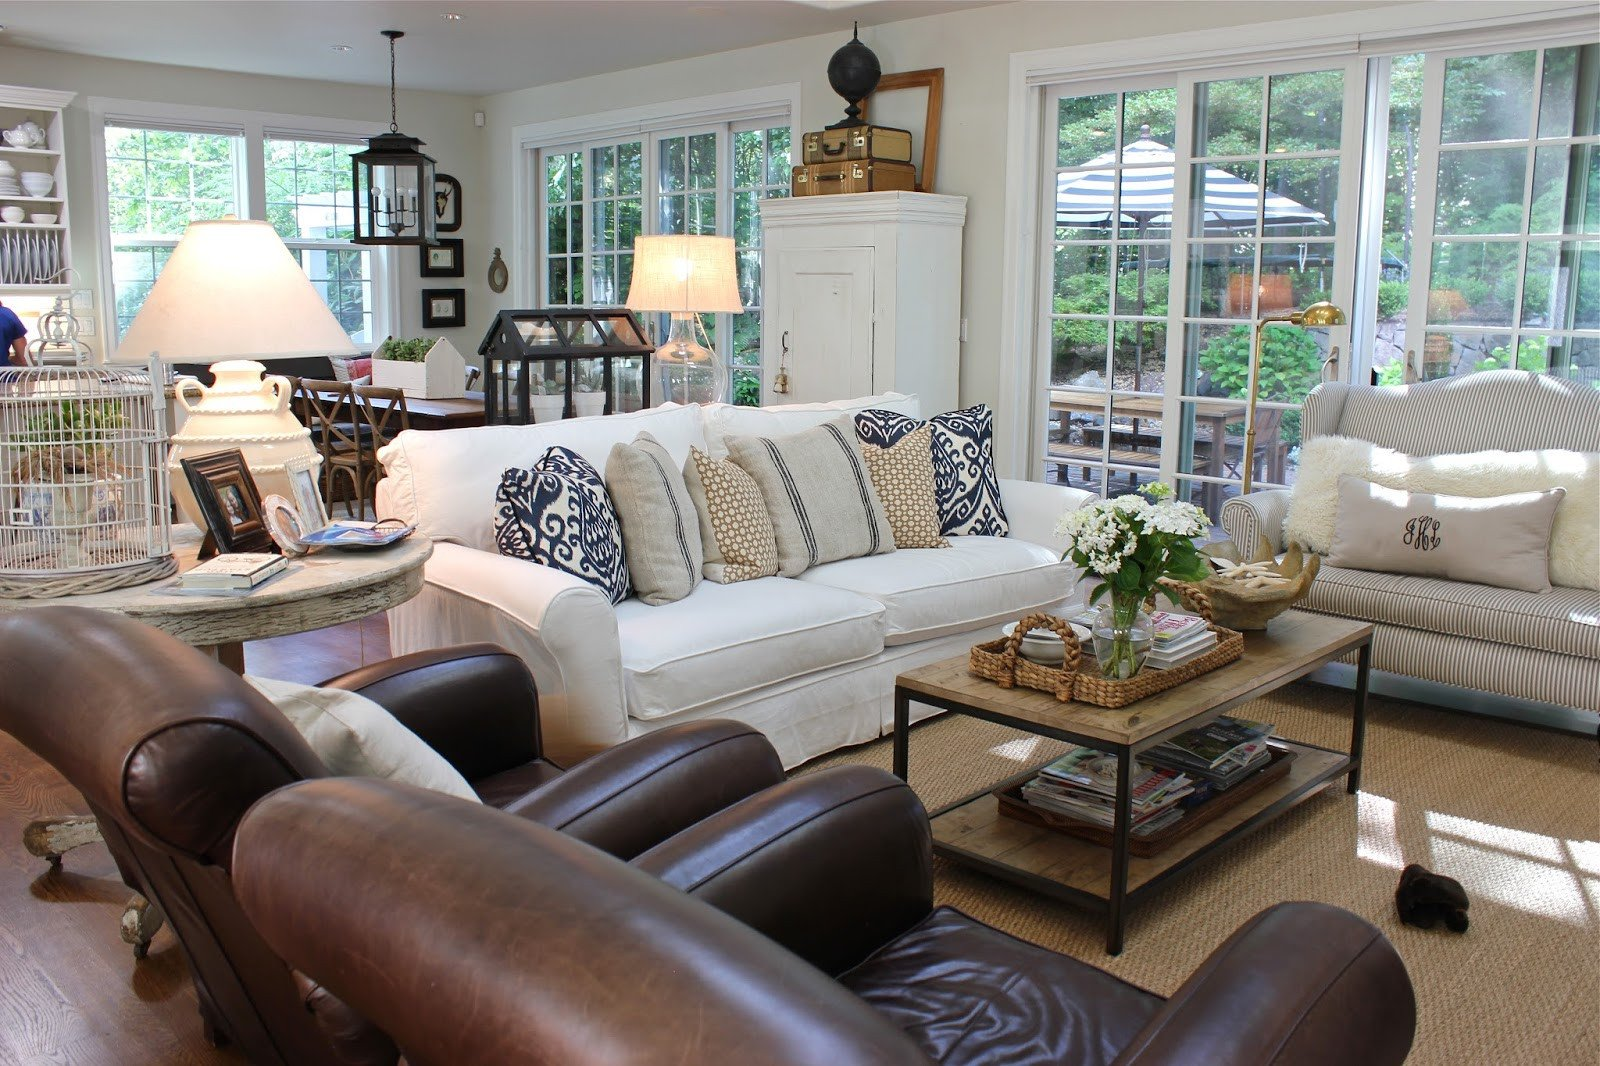 Comfy Living Room Decorating Ideas the Design Anatomy Of the Family Room